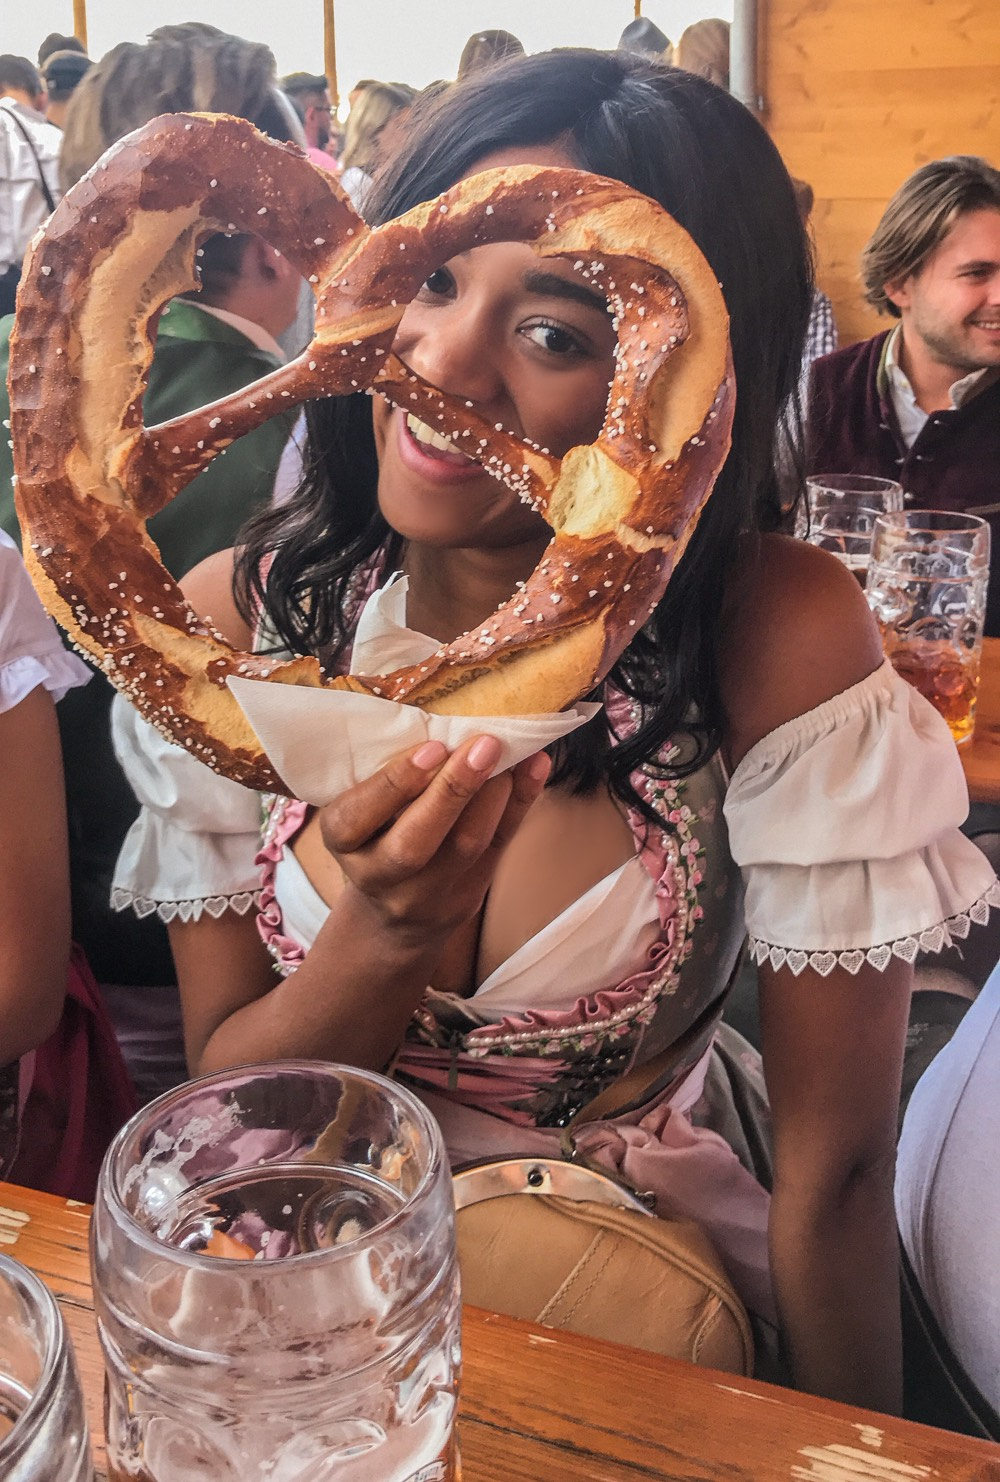 Girl sitting in a Dirndl at the Oktoberfest holding a Prezel